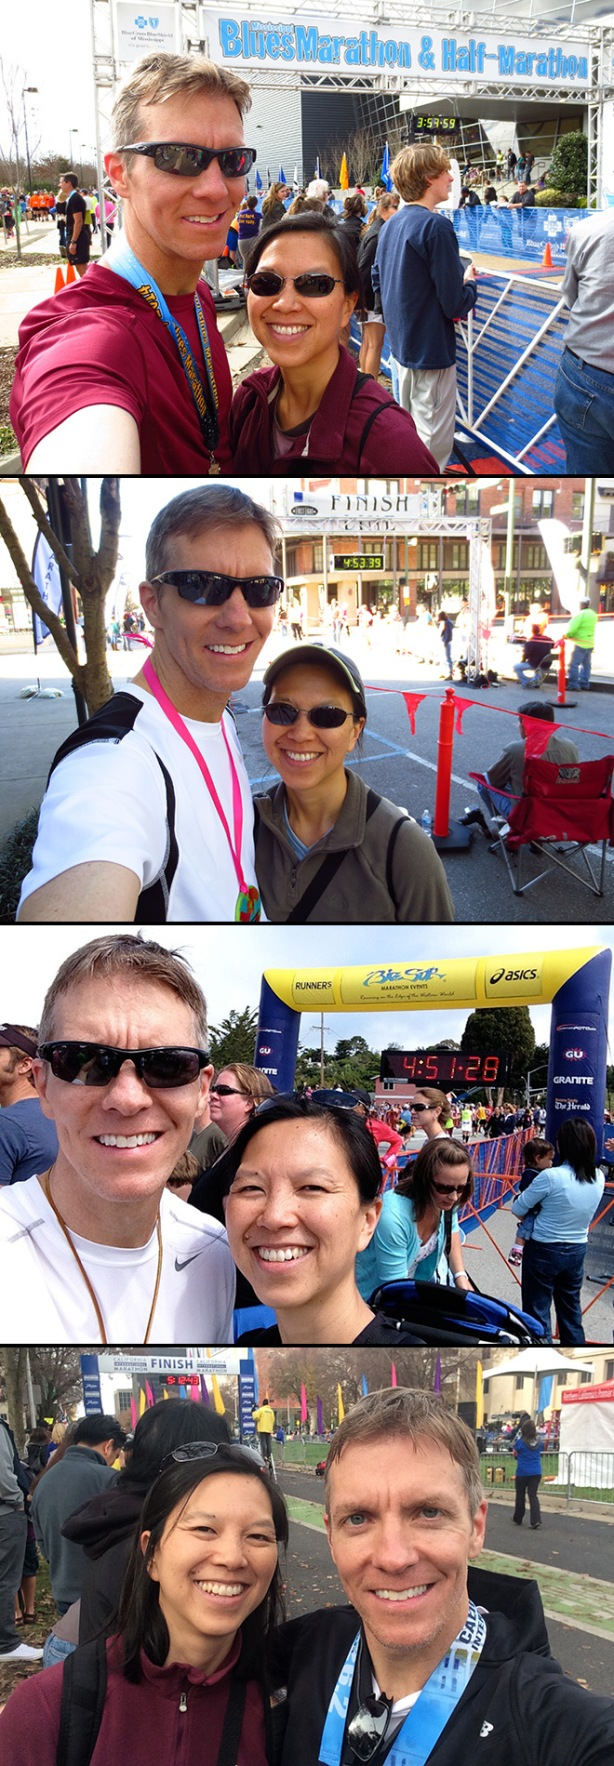 Mississippi Blues Marathon, First Light Marathon, Big Sur Marathon, California International Marathon finish line selfies